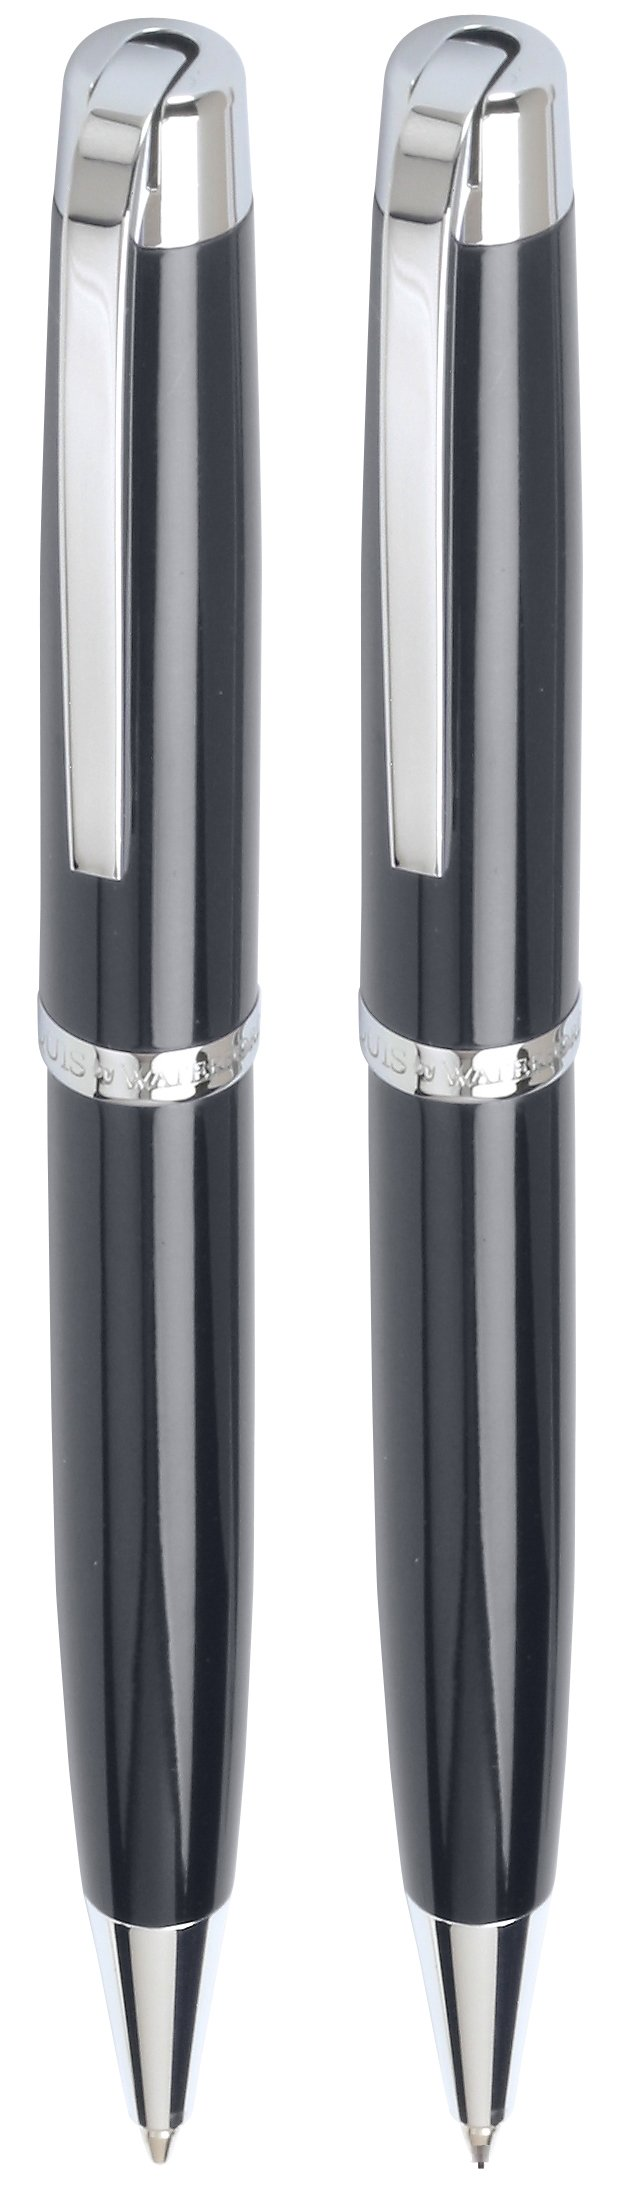 Marquis Metro Ball Pen & Mechanical Pencil Set, Black Lacquer Finish with Chrome Accents (WM/828/BK/C) by Marquis By Waterford (Image #1)